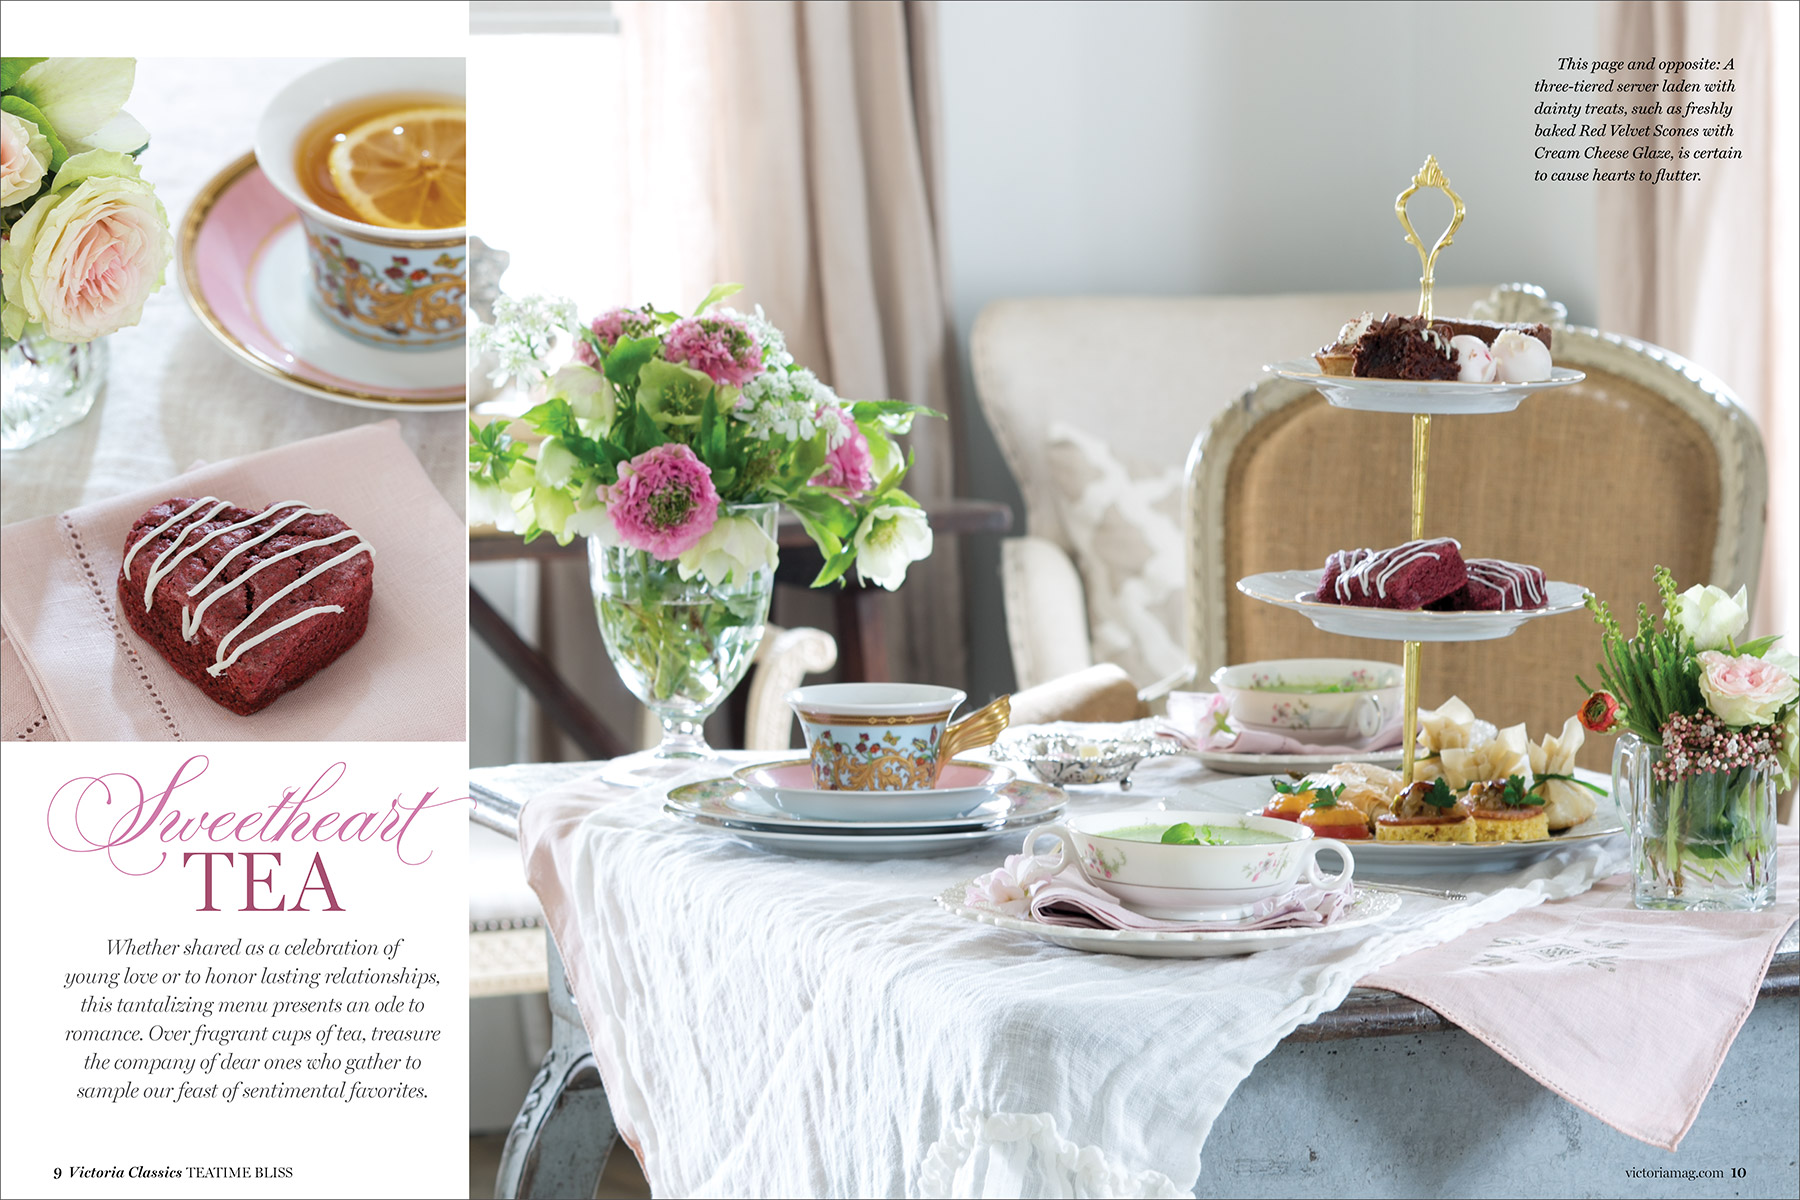 Victoria Teatime Bliss Issue